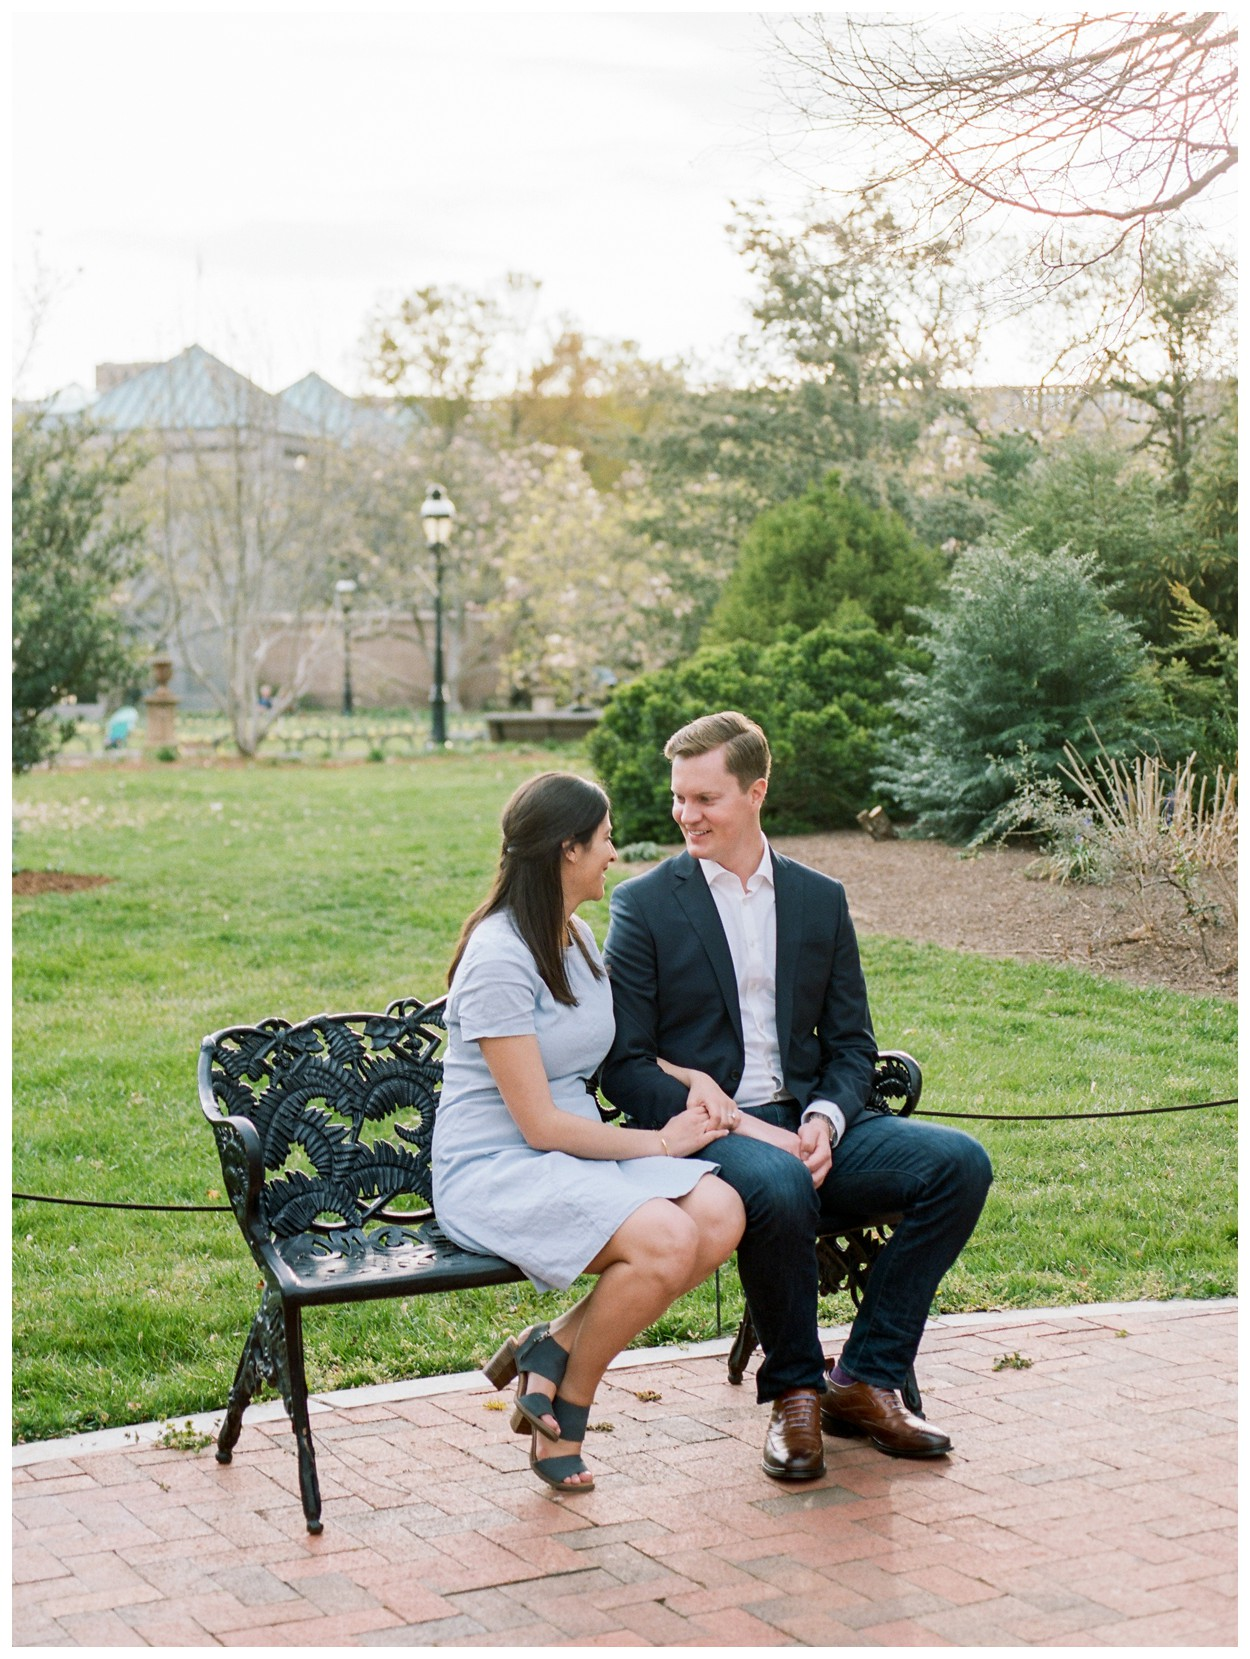 Spring engagement session at Smithsonian Castle in Washington DC by fine art wedding photographer Lissa Ryan Photography